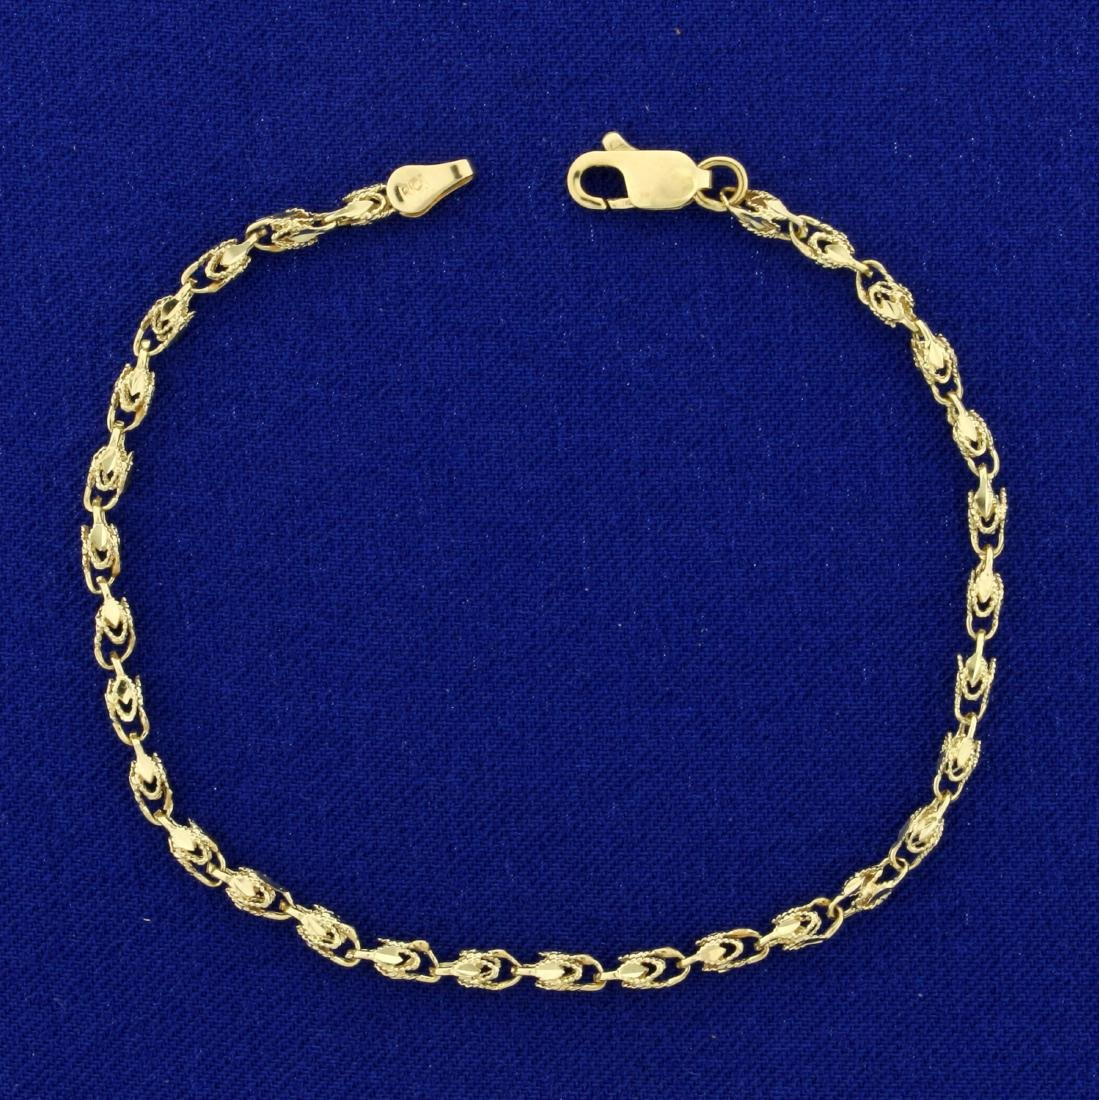 7 Inch Designer Link Bracelet in 10K Yellow Gold